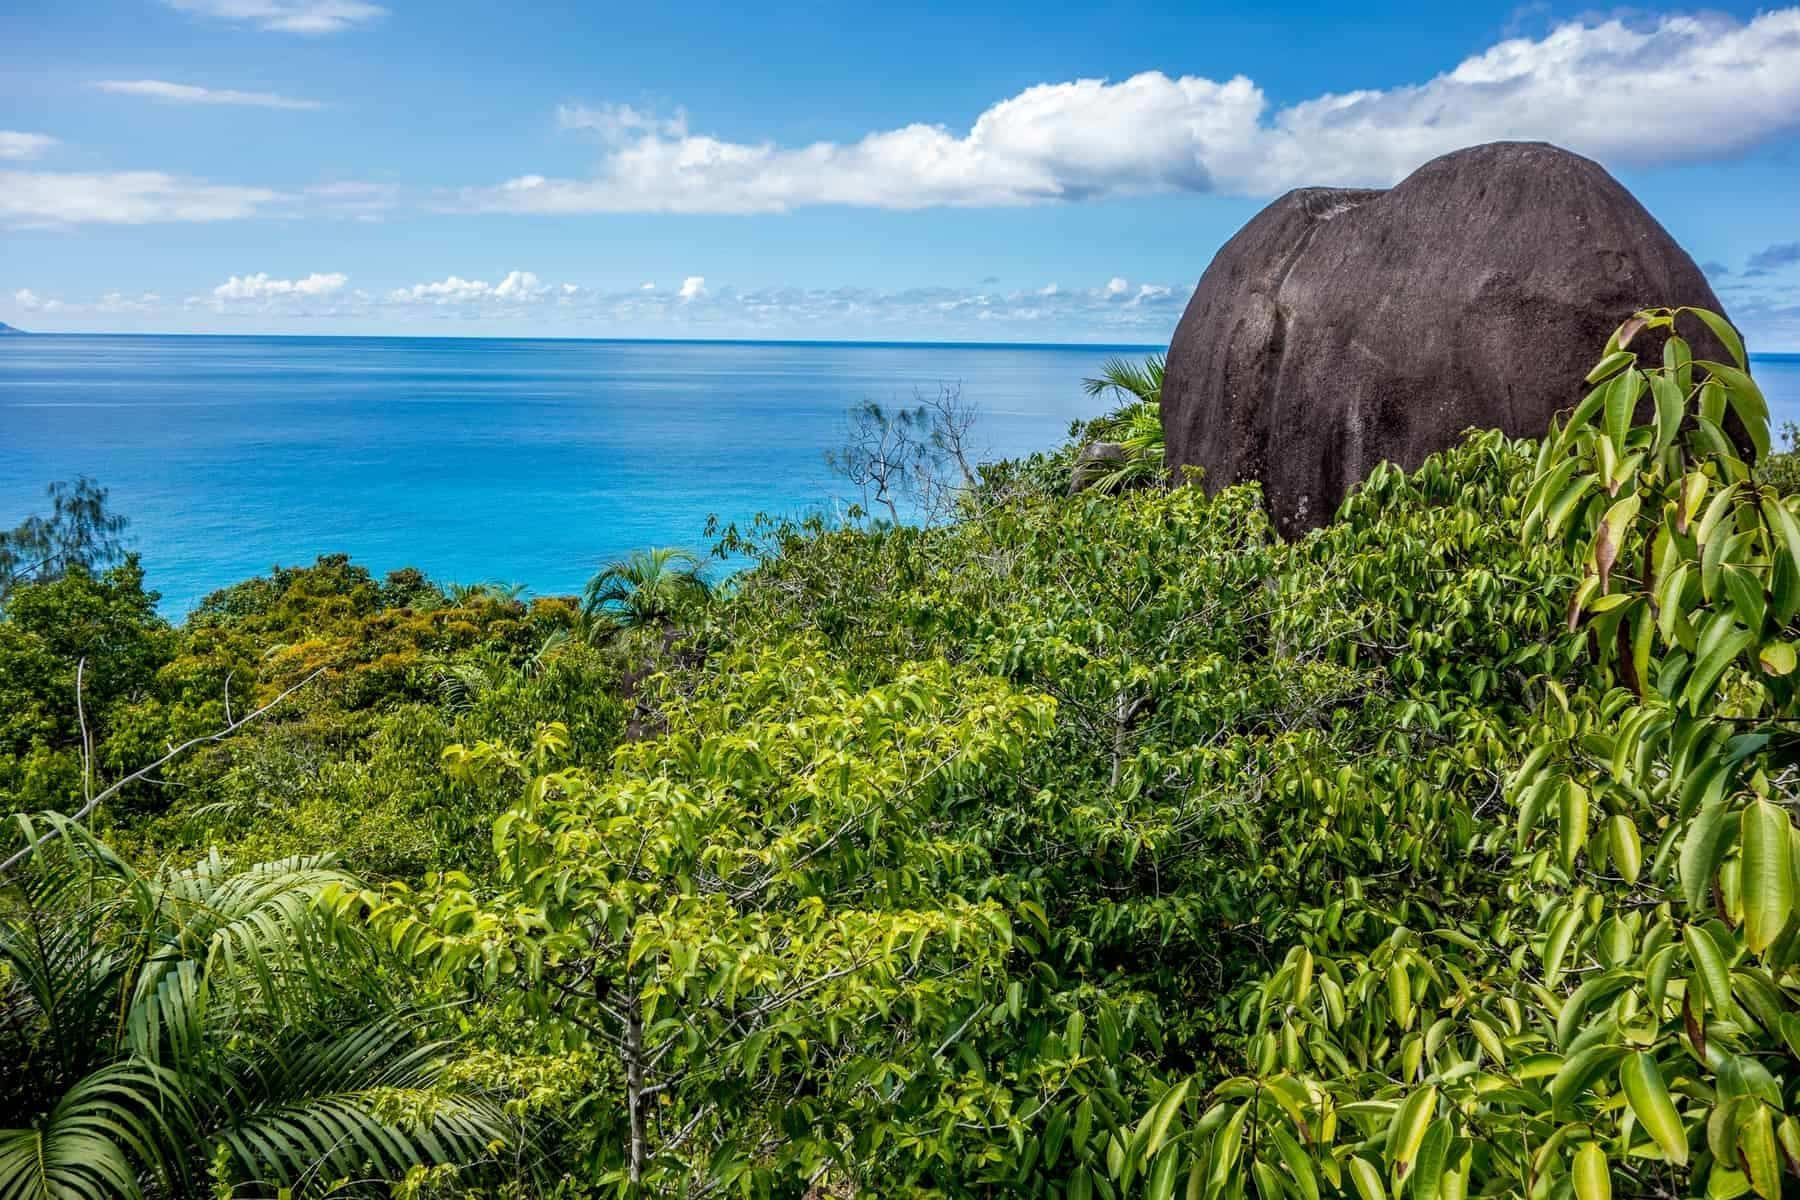 Morne Seychellois National Park in Mahe Seychelles main island